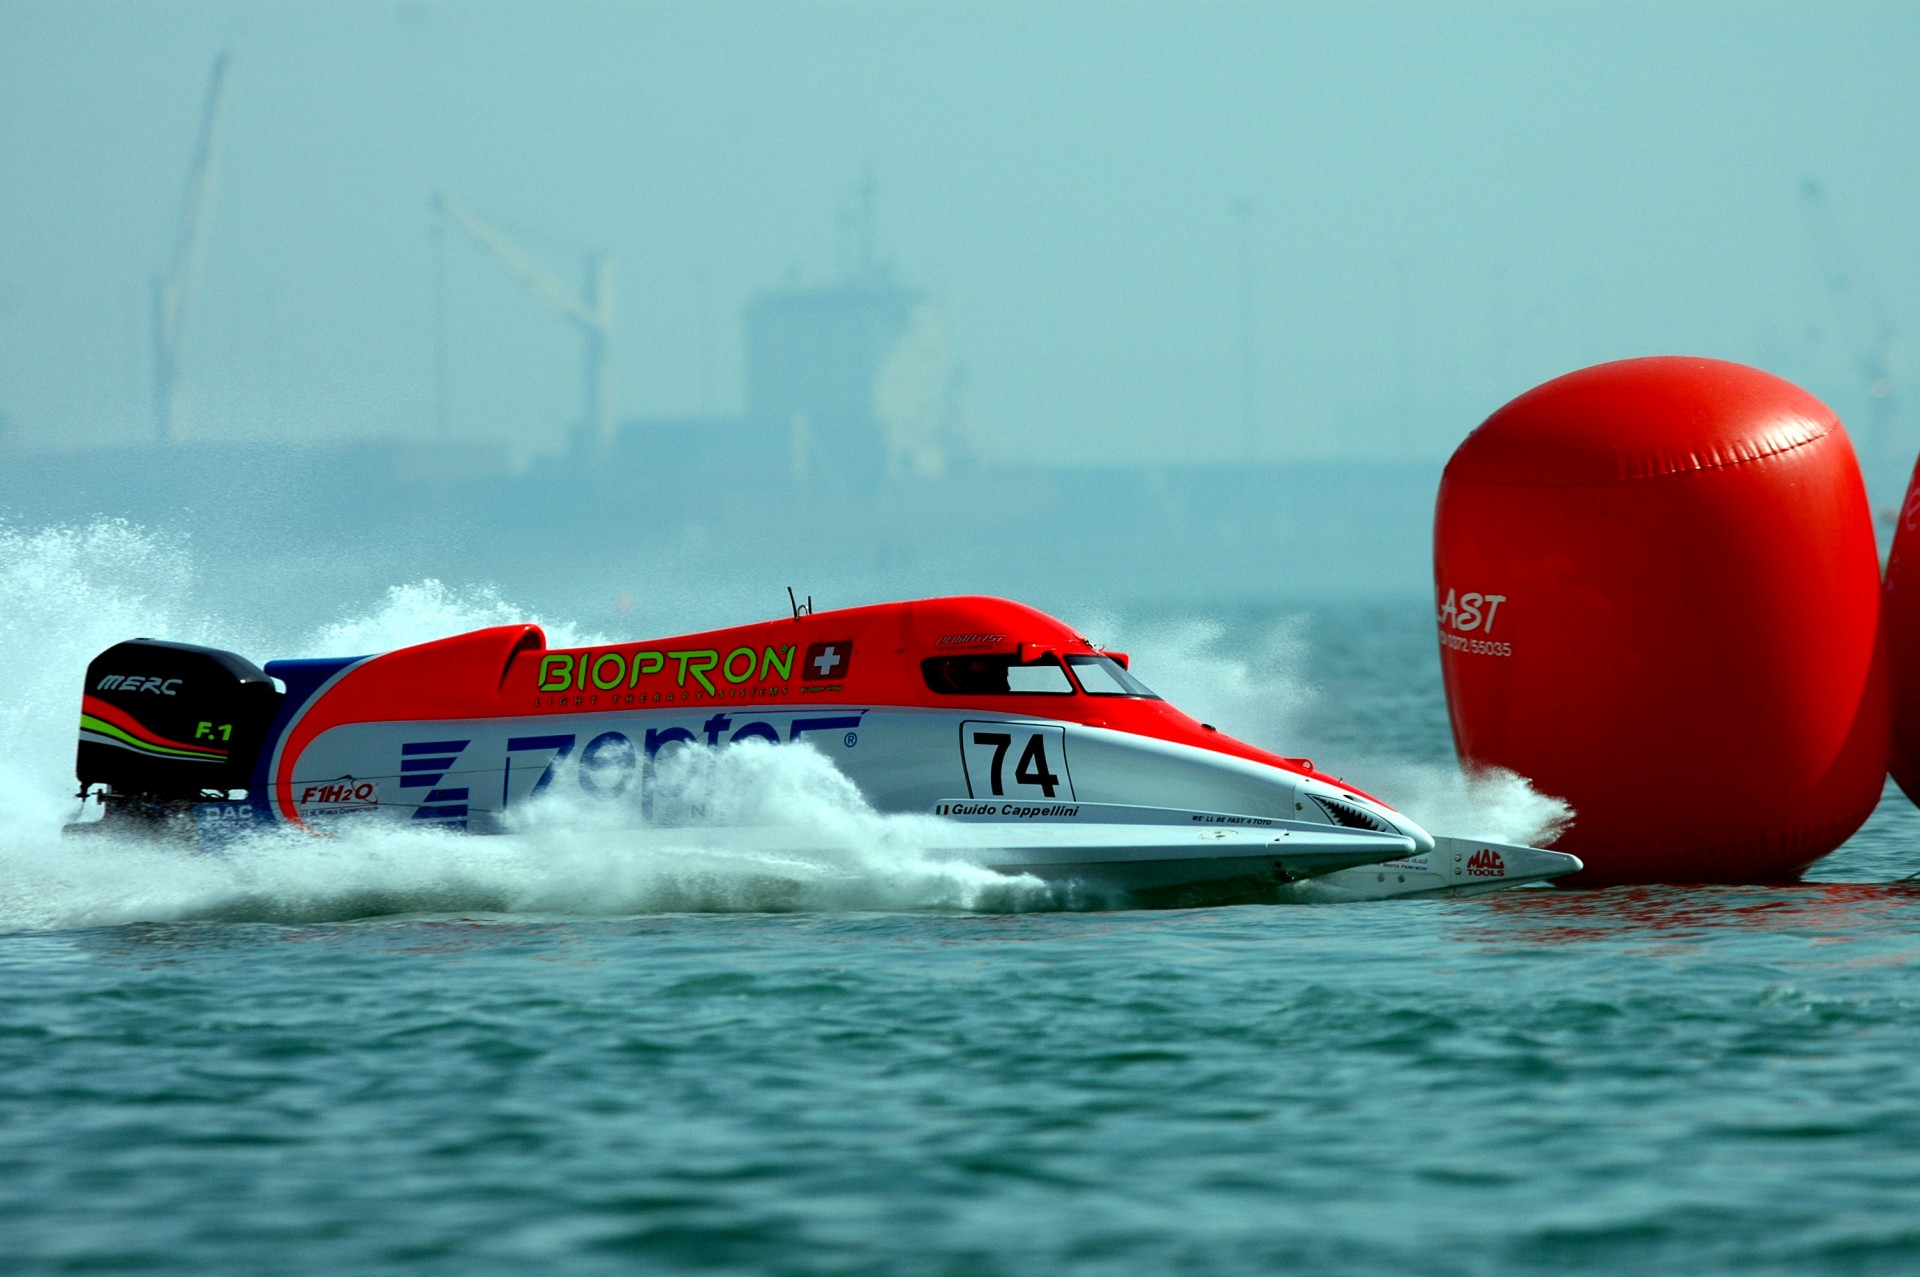 Doha-Qatar-27 November 2009-  Guido Cappellini  of Zepter Team at the official practice for the UIM F1 Powerboat Grand Prix of Qatar in Doha Bay, The Corniche. This GP is the 6th leg of the UIM F1 Powerboat World Championships 2009. Picture by Vittorio Ubertone/Idea Marketing